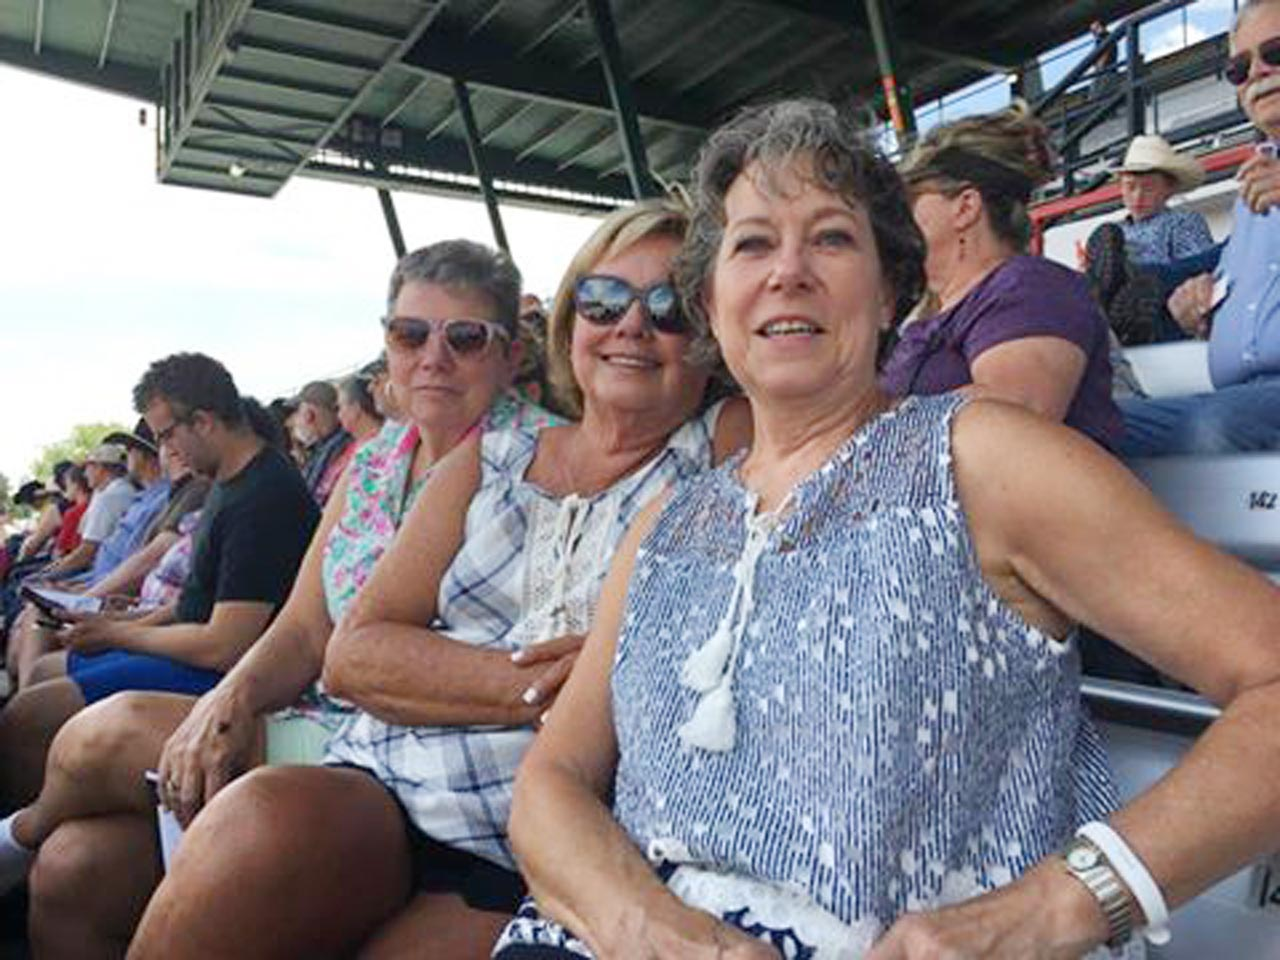 Mahala Brixey, Sheila Stevens and Mary Wells at Cheyenne Frontier Days, Cheyenne, Wyoming.